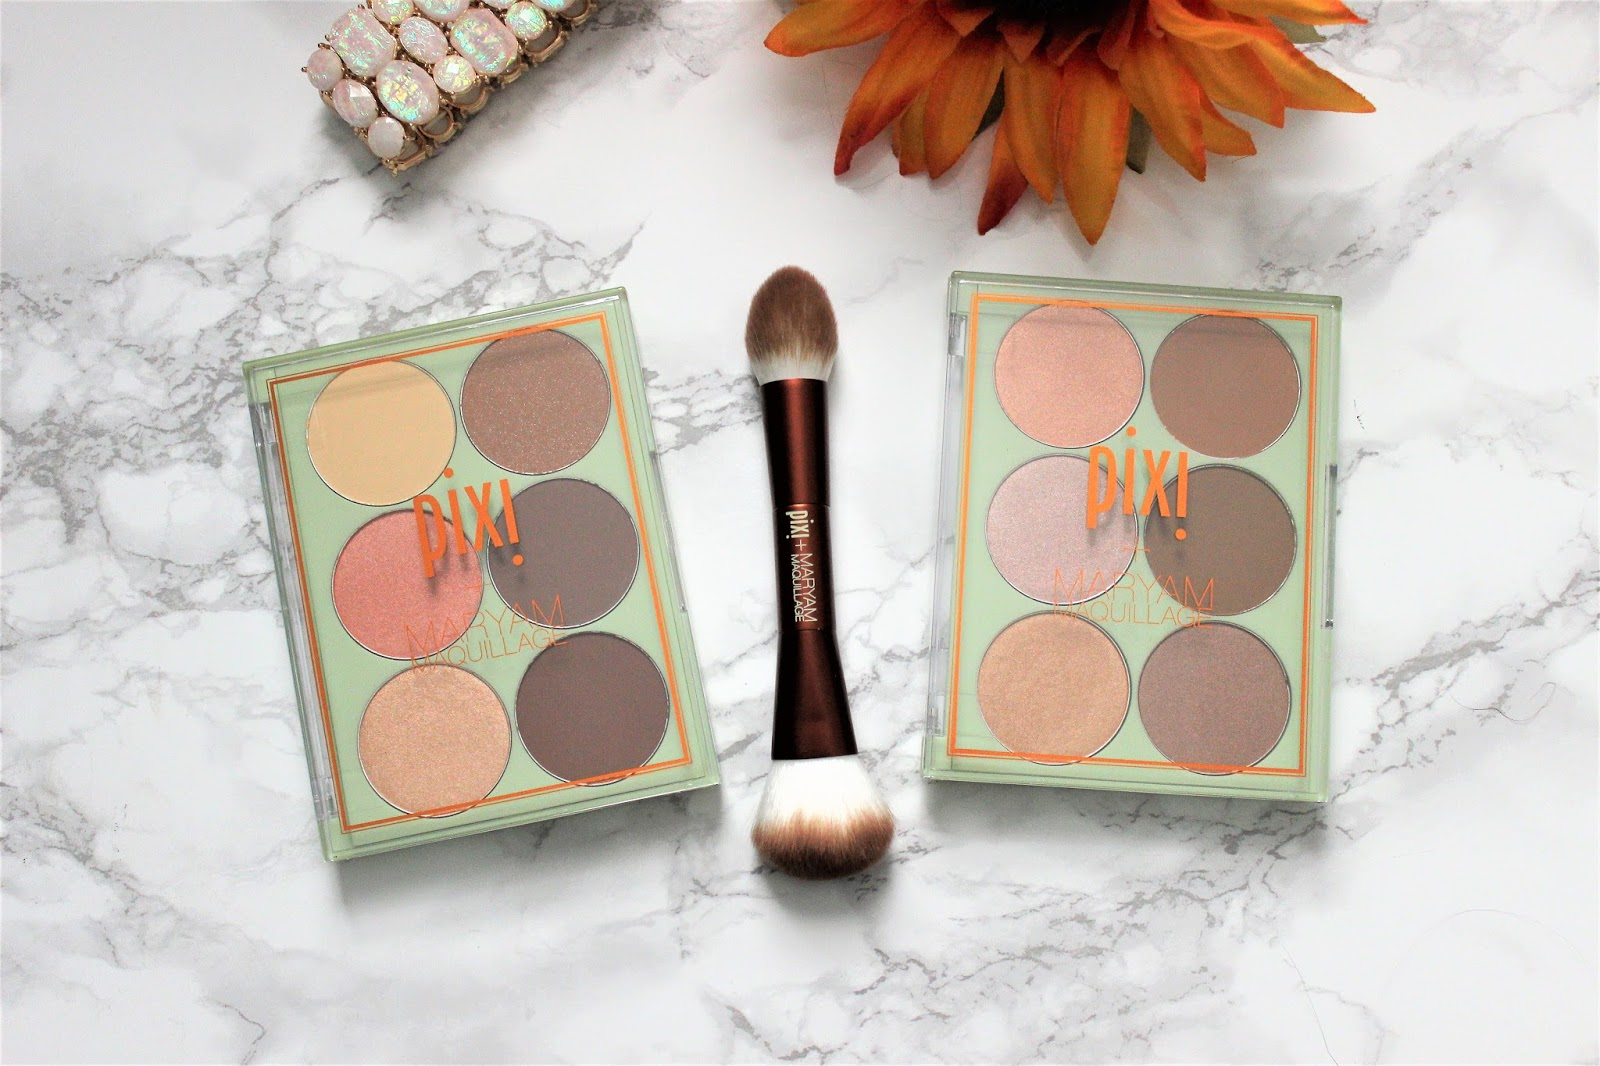 Pixi Beauty X Maryam Maquillage